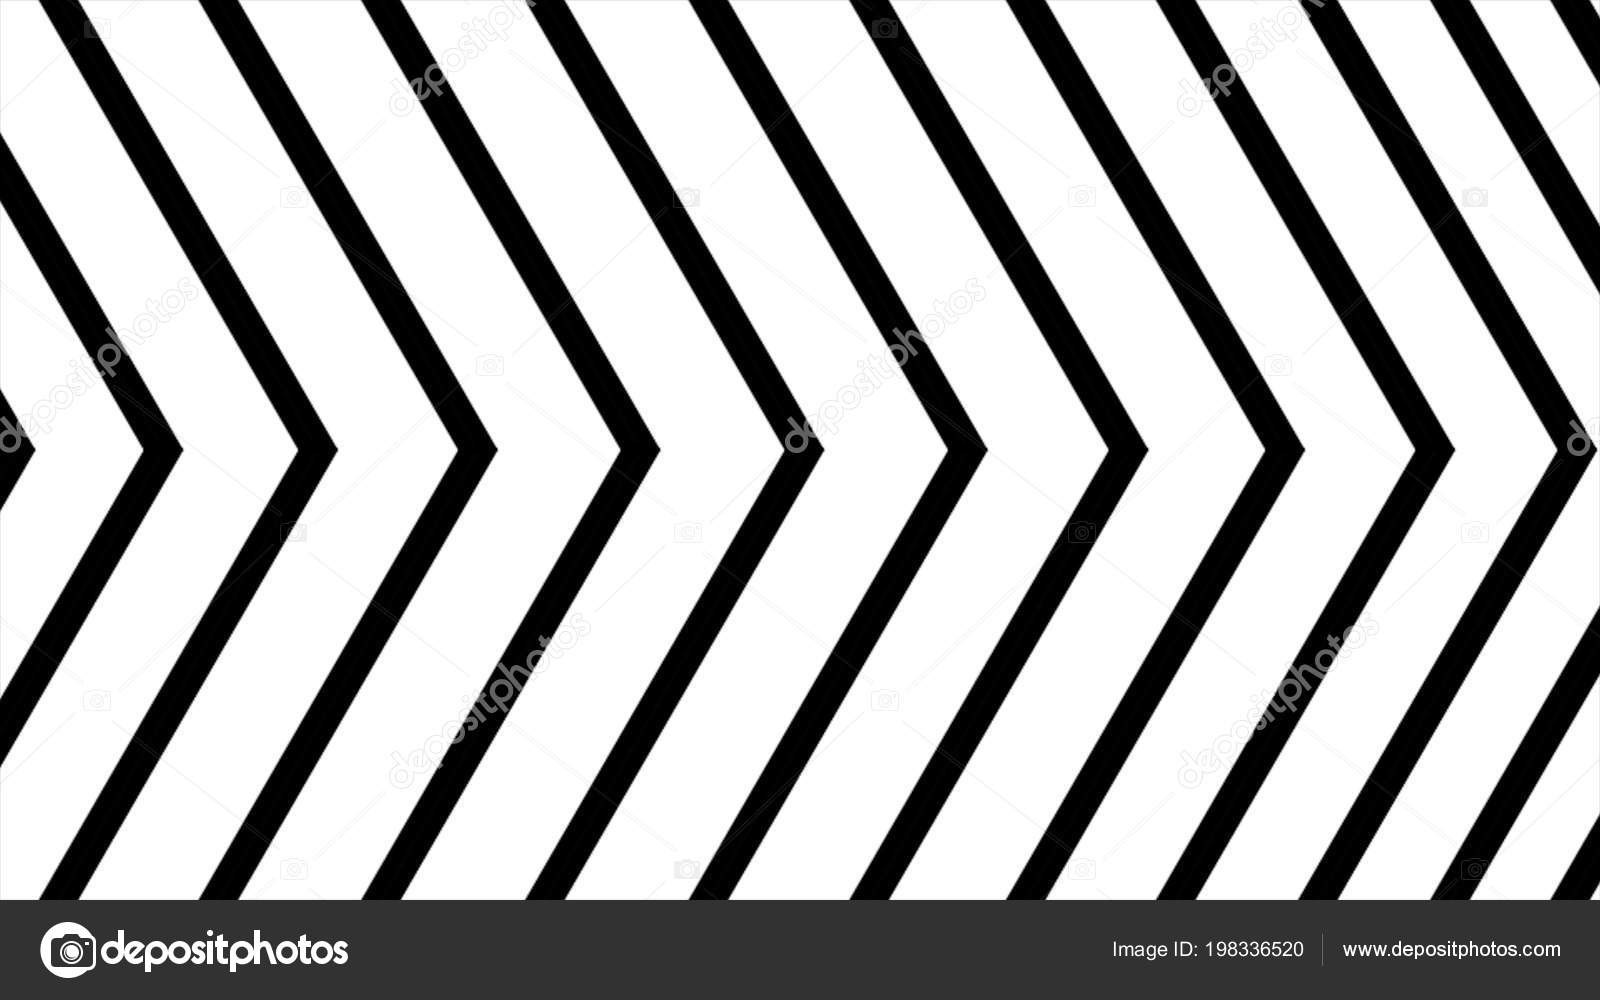 Abstract Cgi Motion Graphics And Animated Background With Moving Black And White Angle High Definition Cgi Motion Backgrounds Ideal For Editing Led Backdrops Or Broadcasting Featuring Black And Stock Photo C